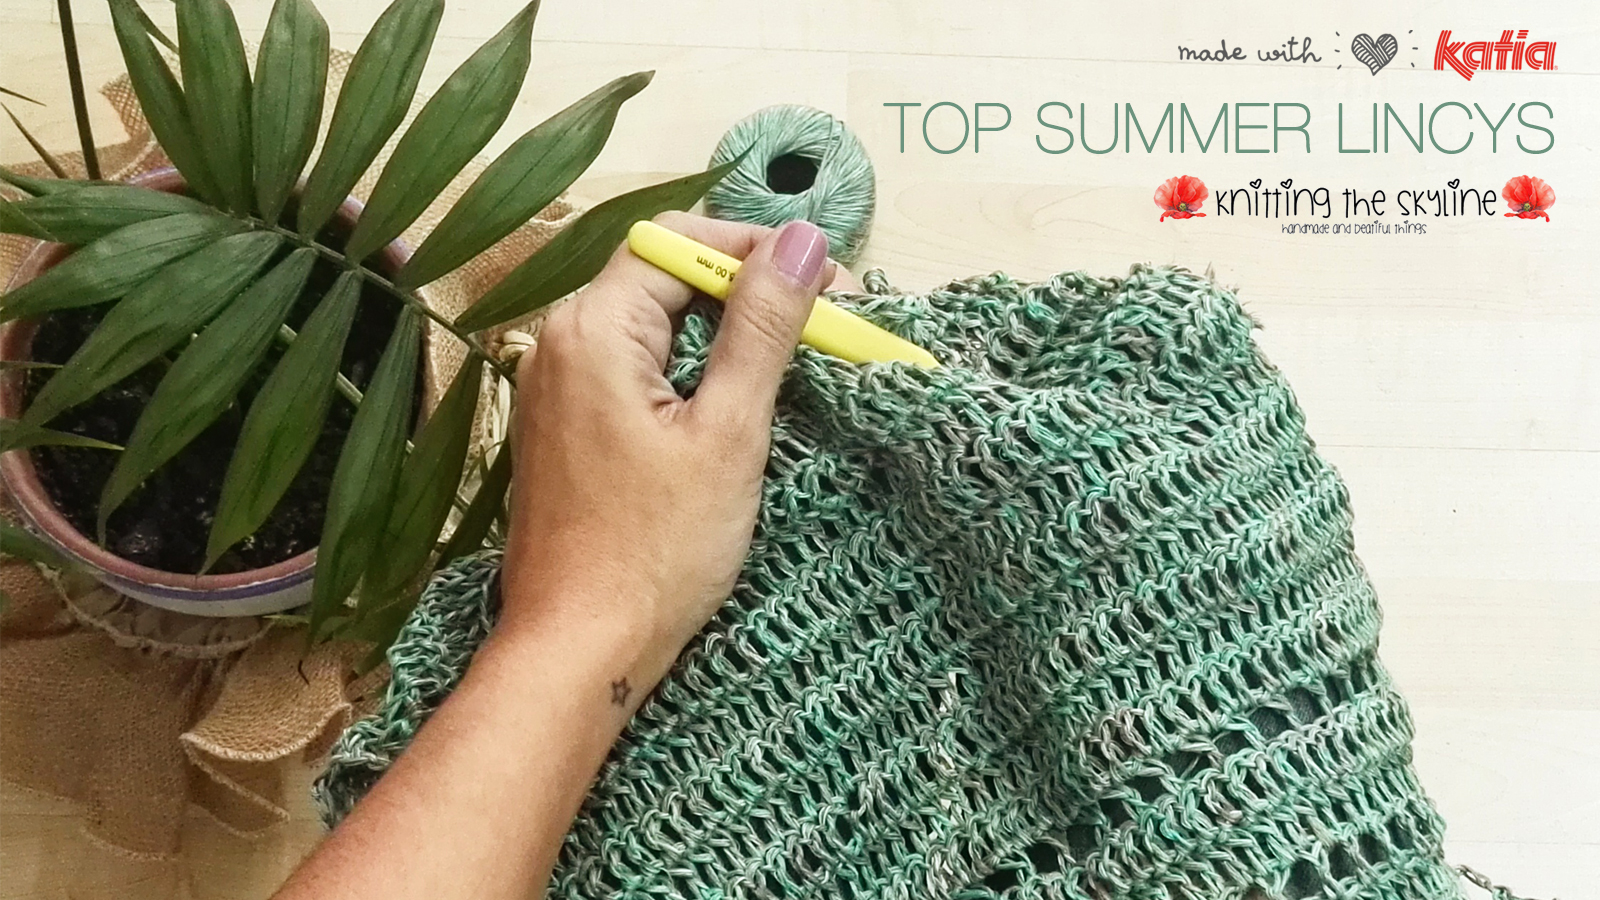 Top Summer Lincys, patrón de ganchillo por Knitting the Skyline